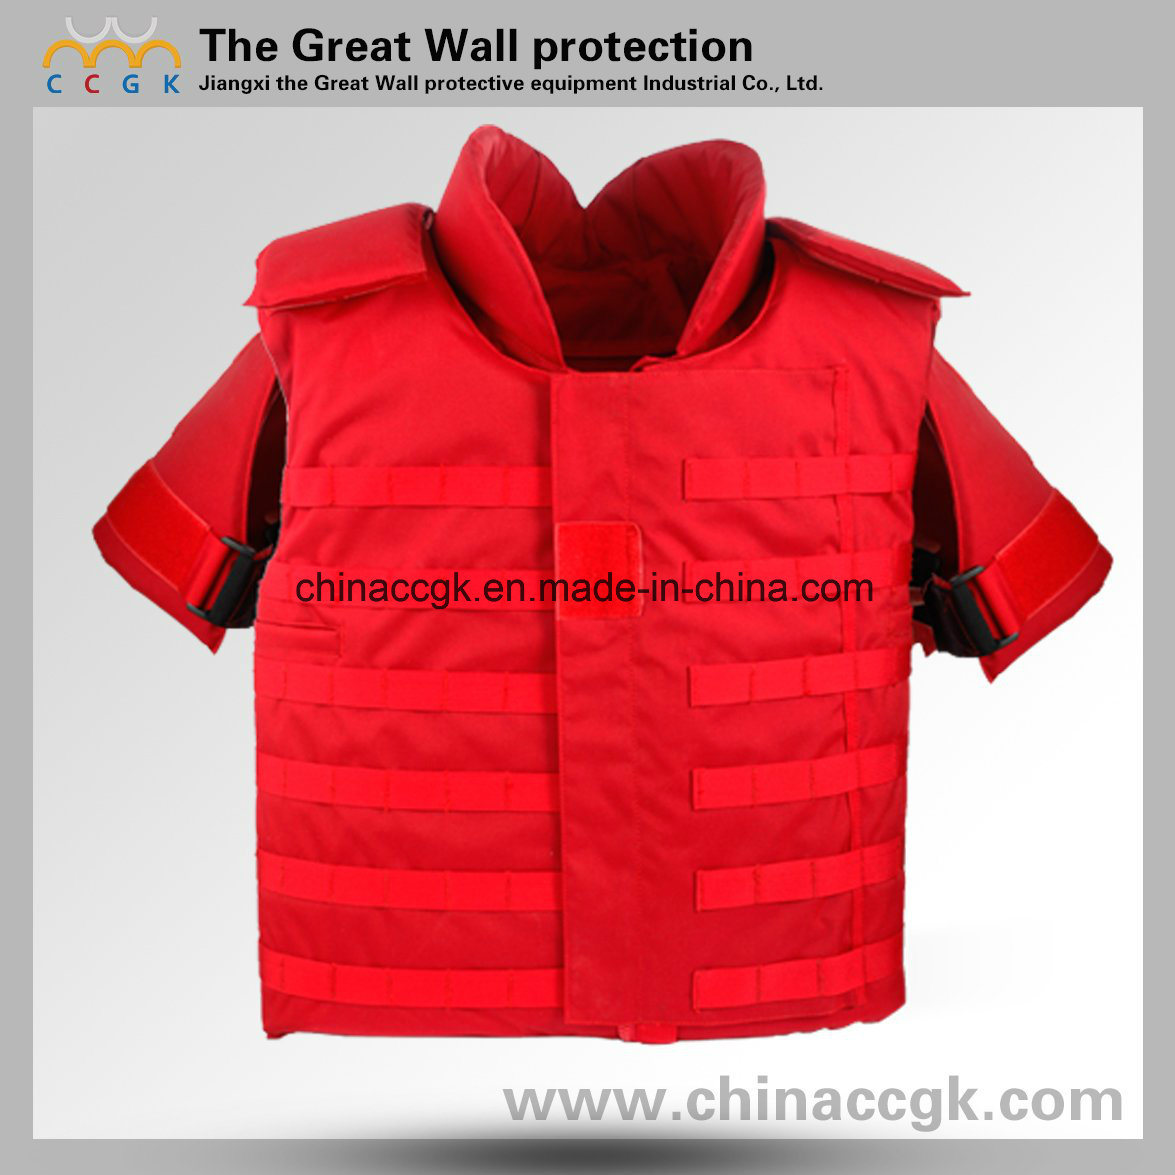 Nij III / IV Kevlar Red Full-Protection Tactical Bulletproof Vest